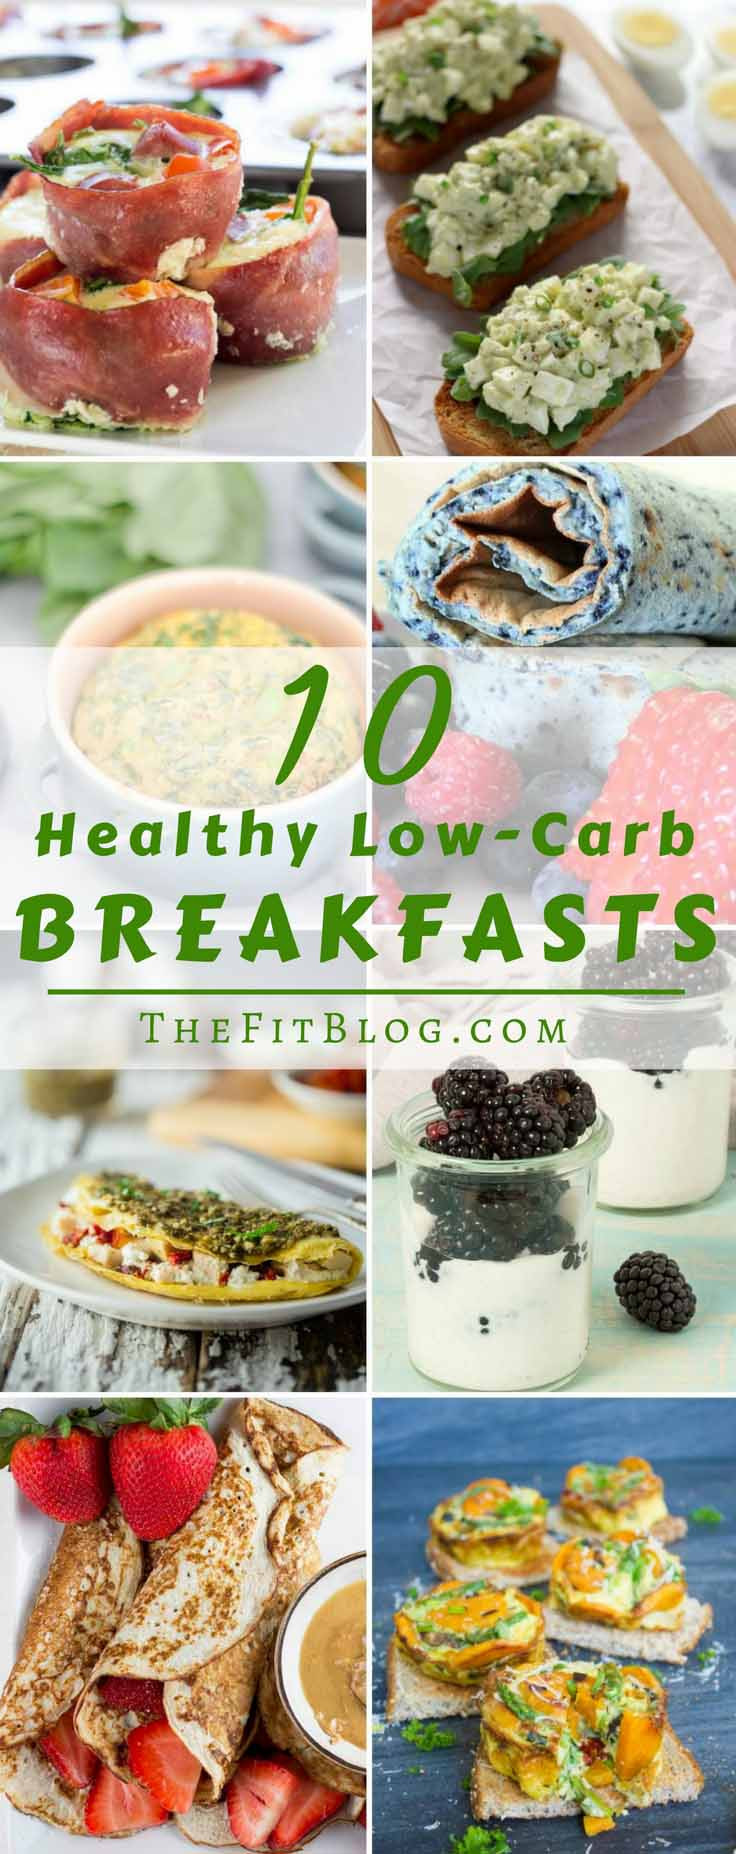 Healthy Carbs For Breakfast  10 Healthy Low Carb Breakfast Recipes